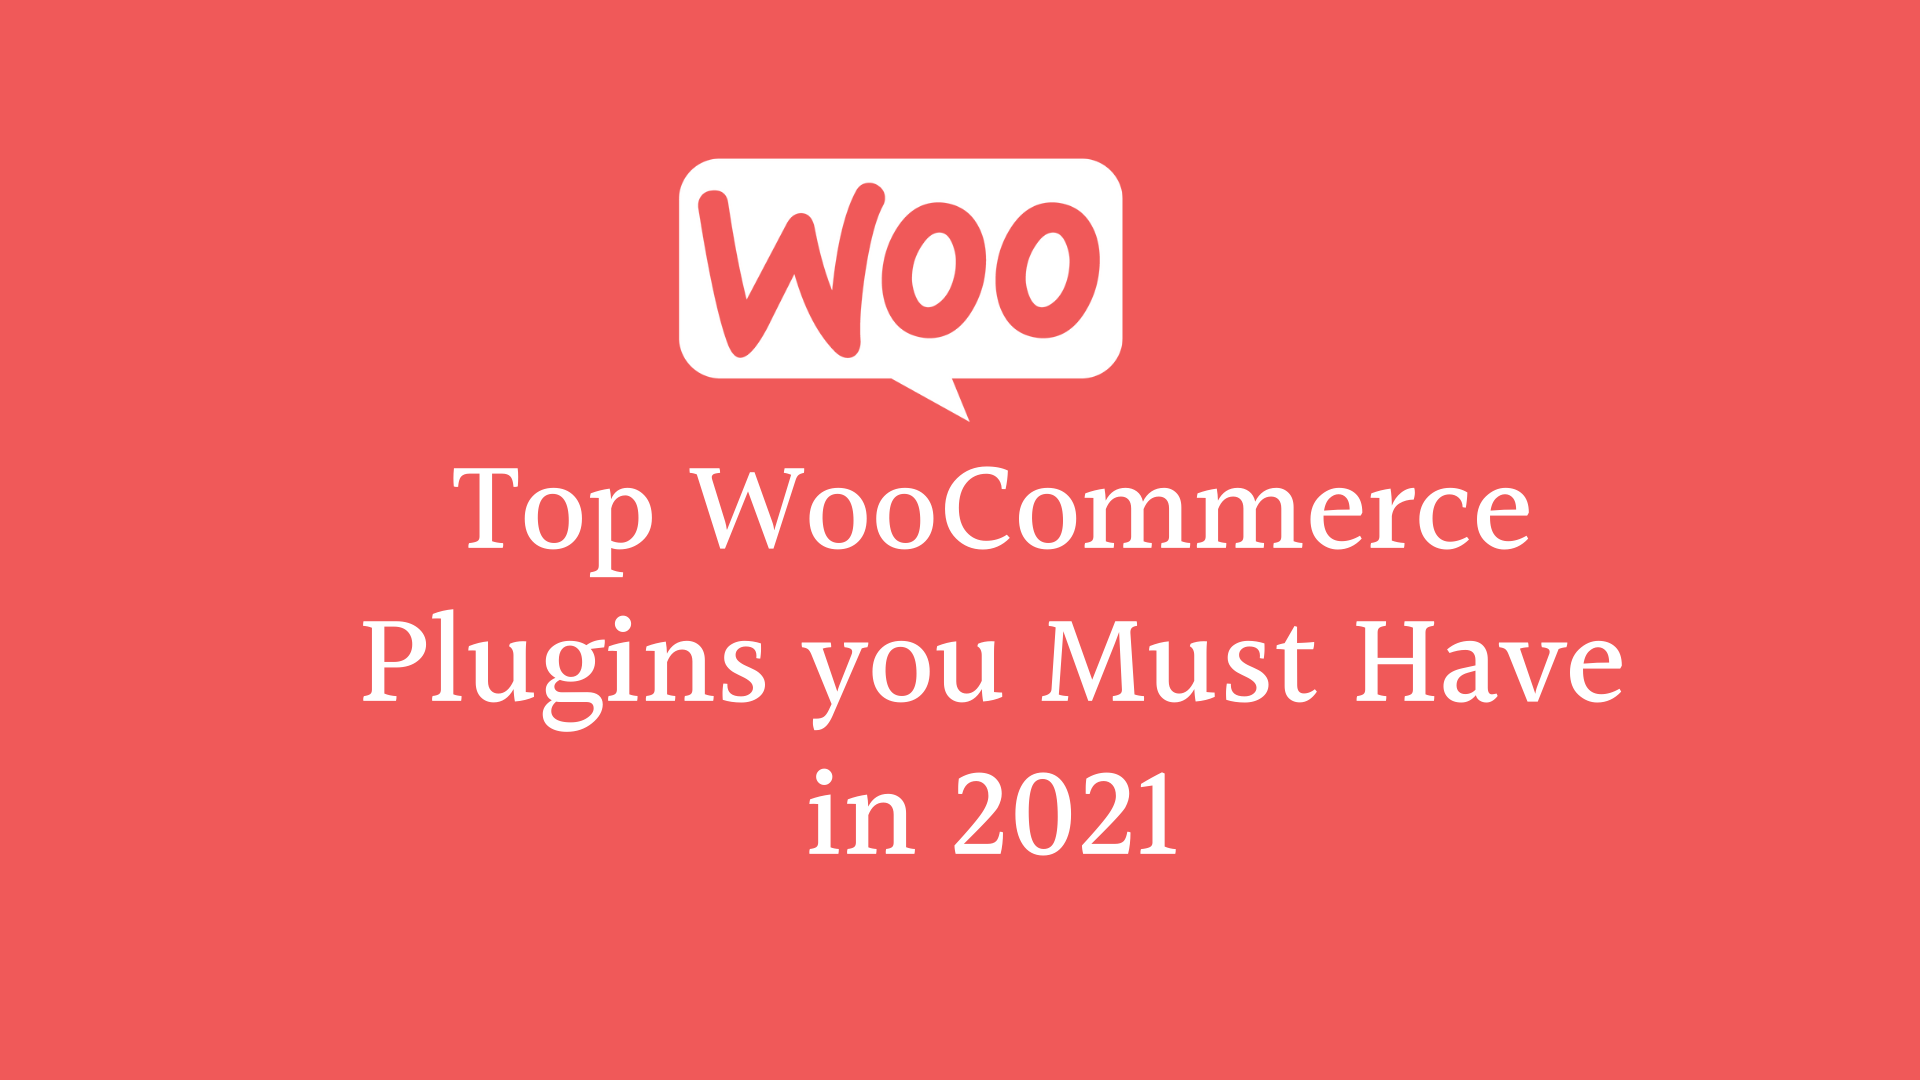 Top WooCommerce Plugins you Must Have in 2021